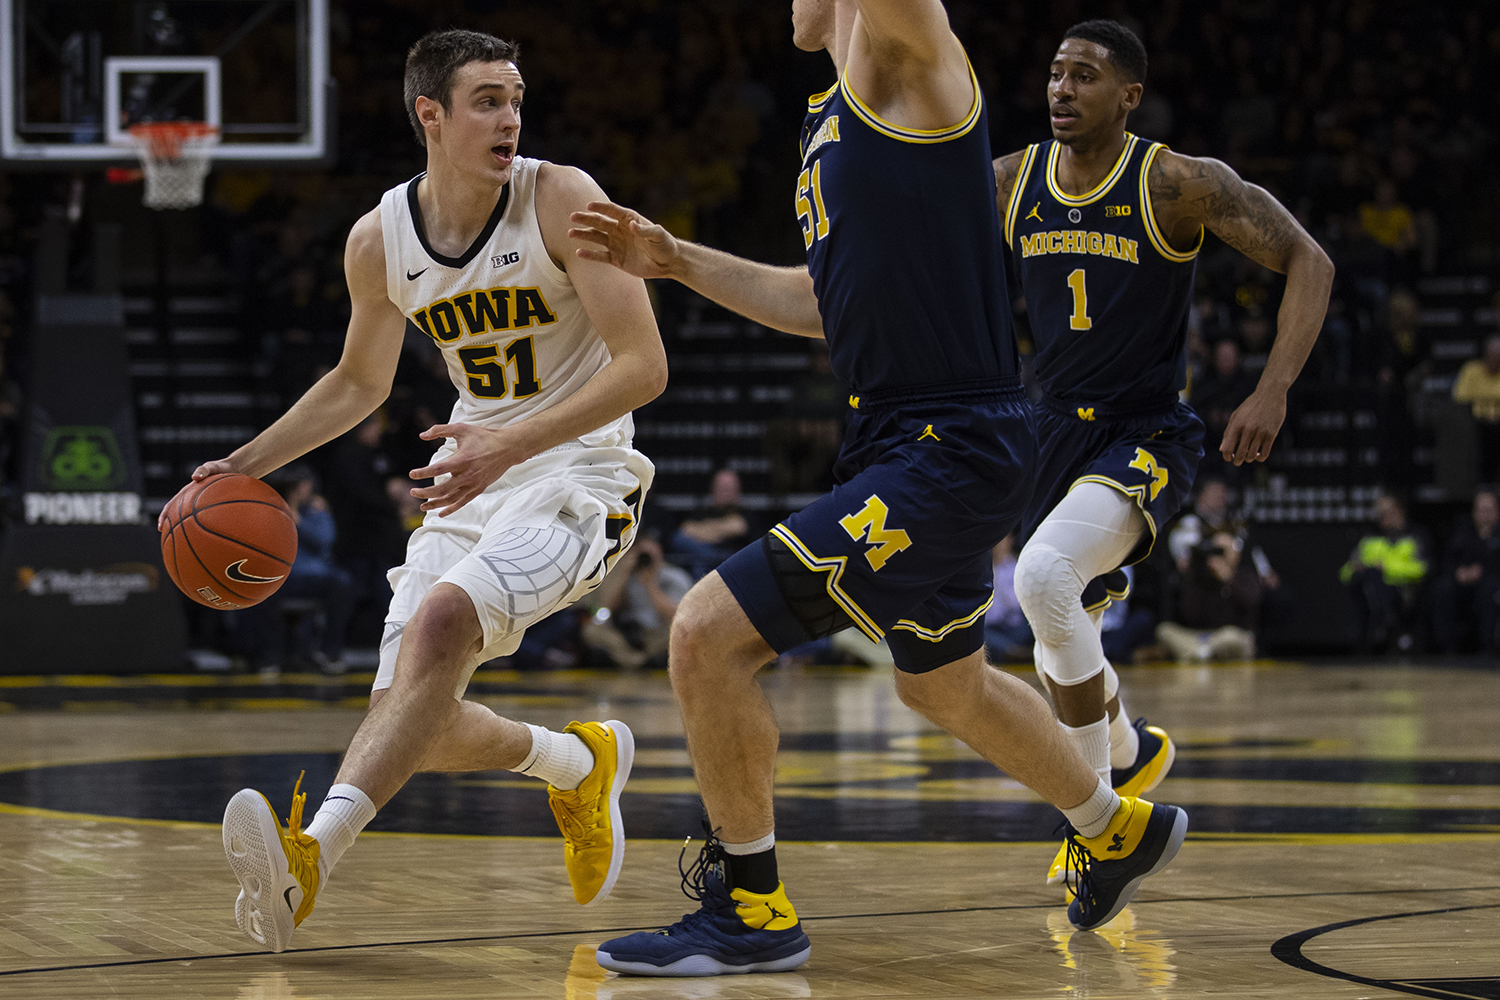 Iowa+forward+Nicholas+Baer+drives+to+the+basket+during+the+Iowa%2FMichigan+men%27s+basketball+game+at+Carver-Hawkeye+Arena+on+Friday%2C+February+1%2C+2019.+The+Hawkeyes+took+down+the+No.+5+ranked+Wolverines%2C+74-59.+